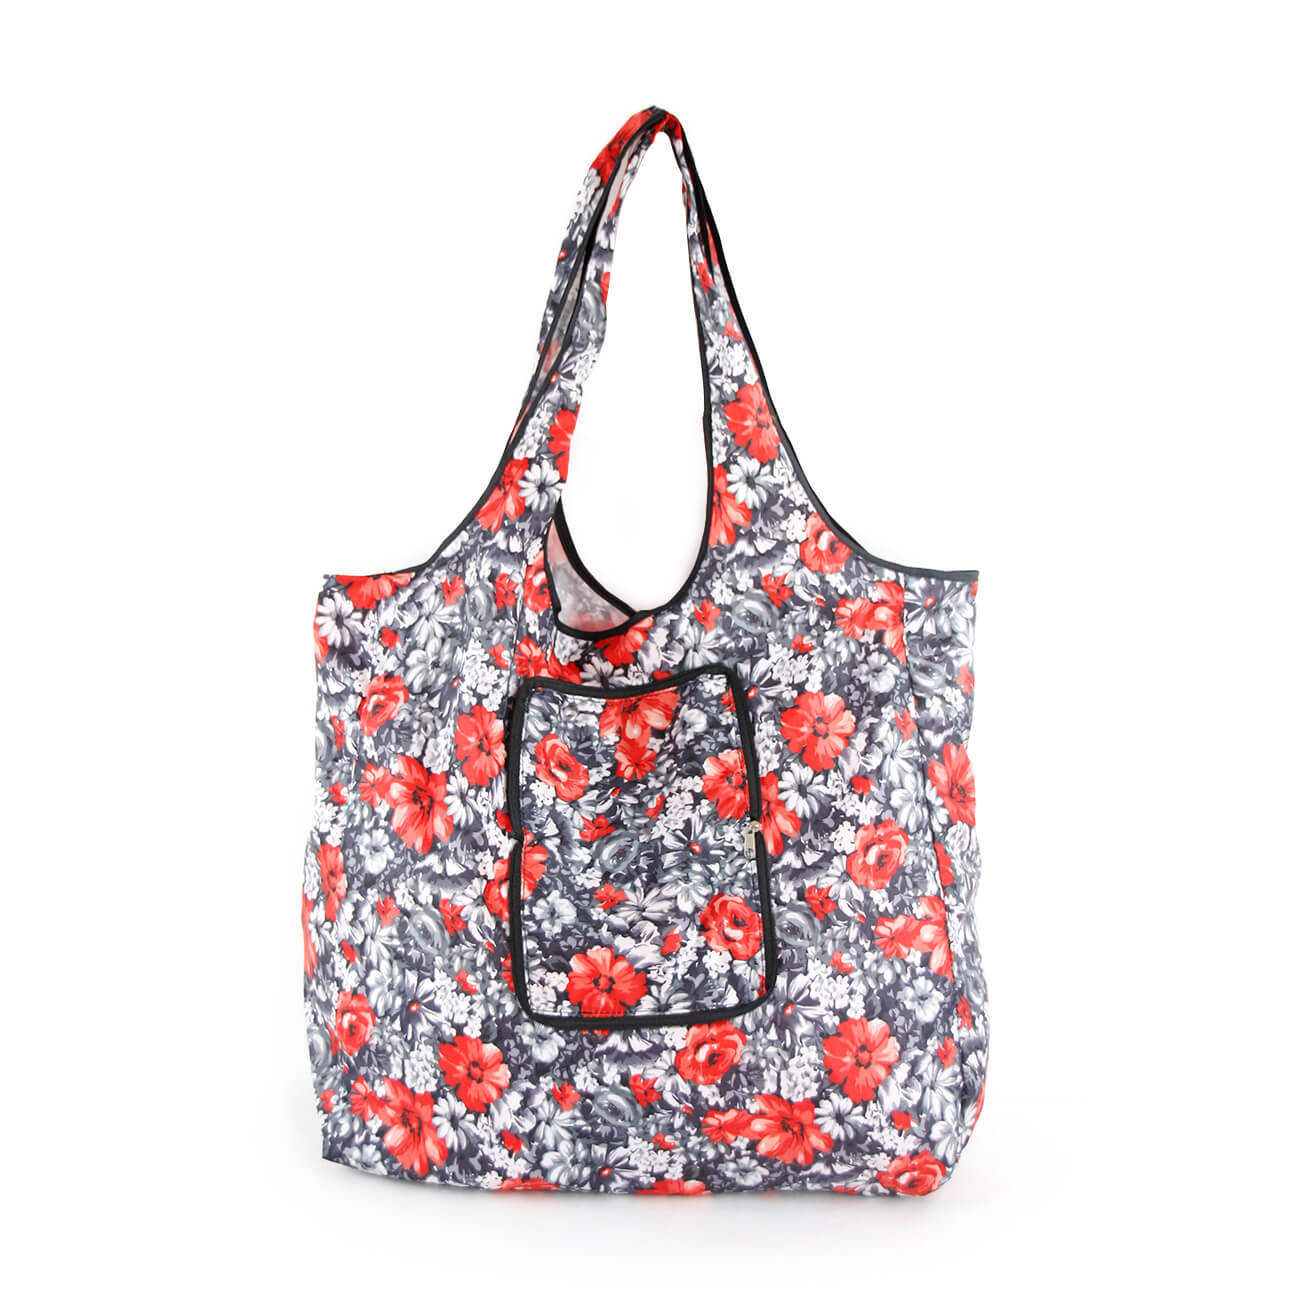 Flower Foldable nylon tote bag